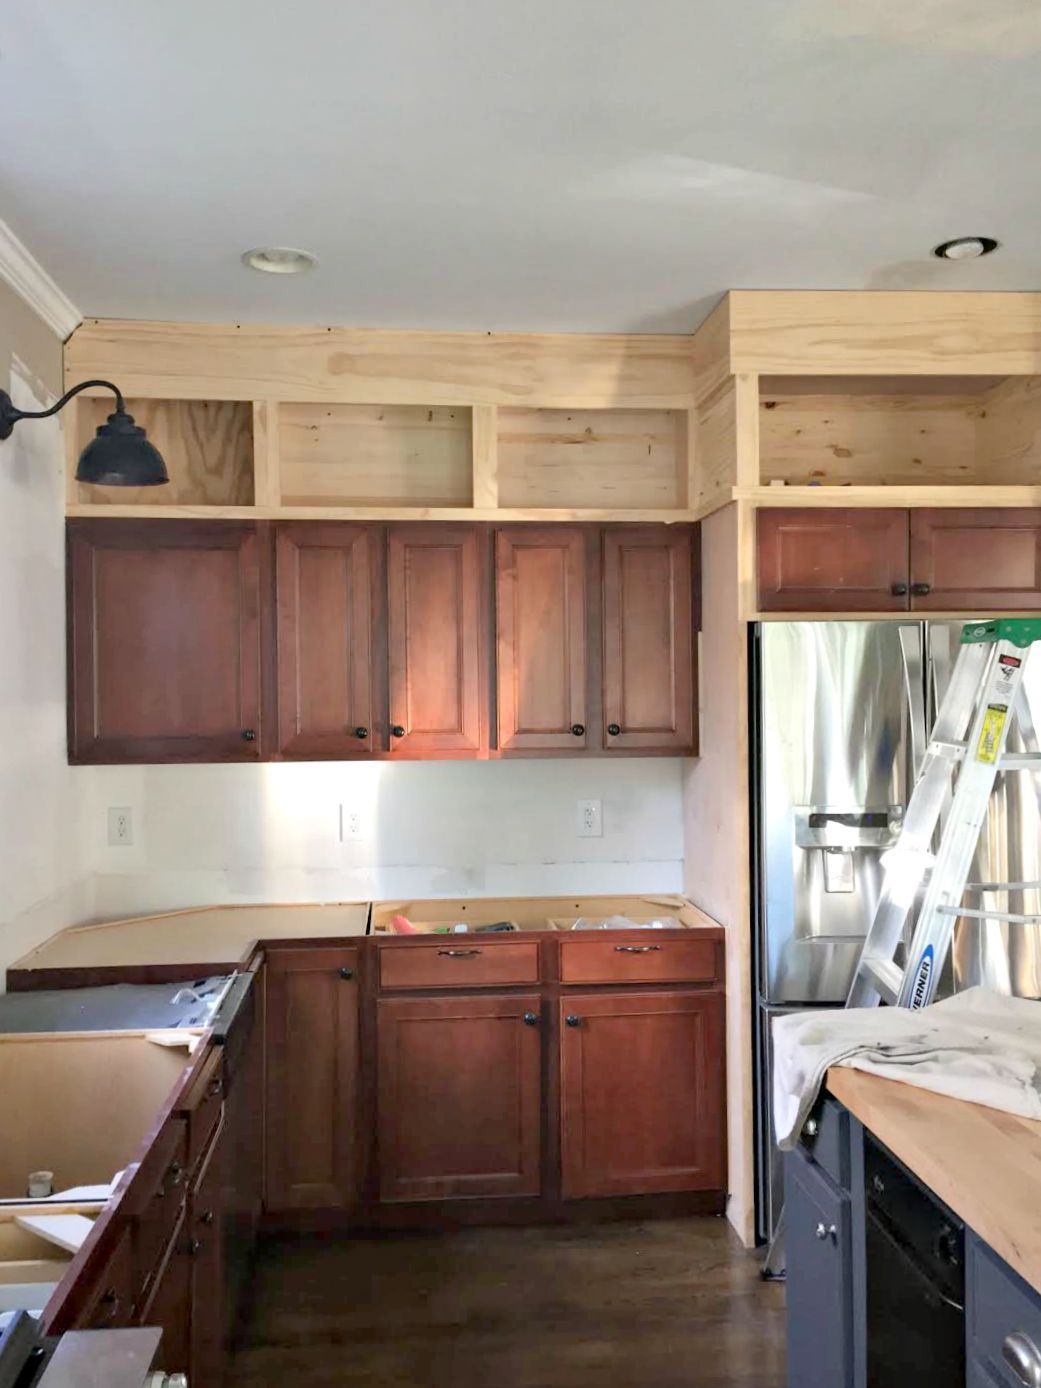 Kitchen Cabinets To The Ceiling Building Cabinets Up To The Ceiling  Building Kitchen Cabinets .